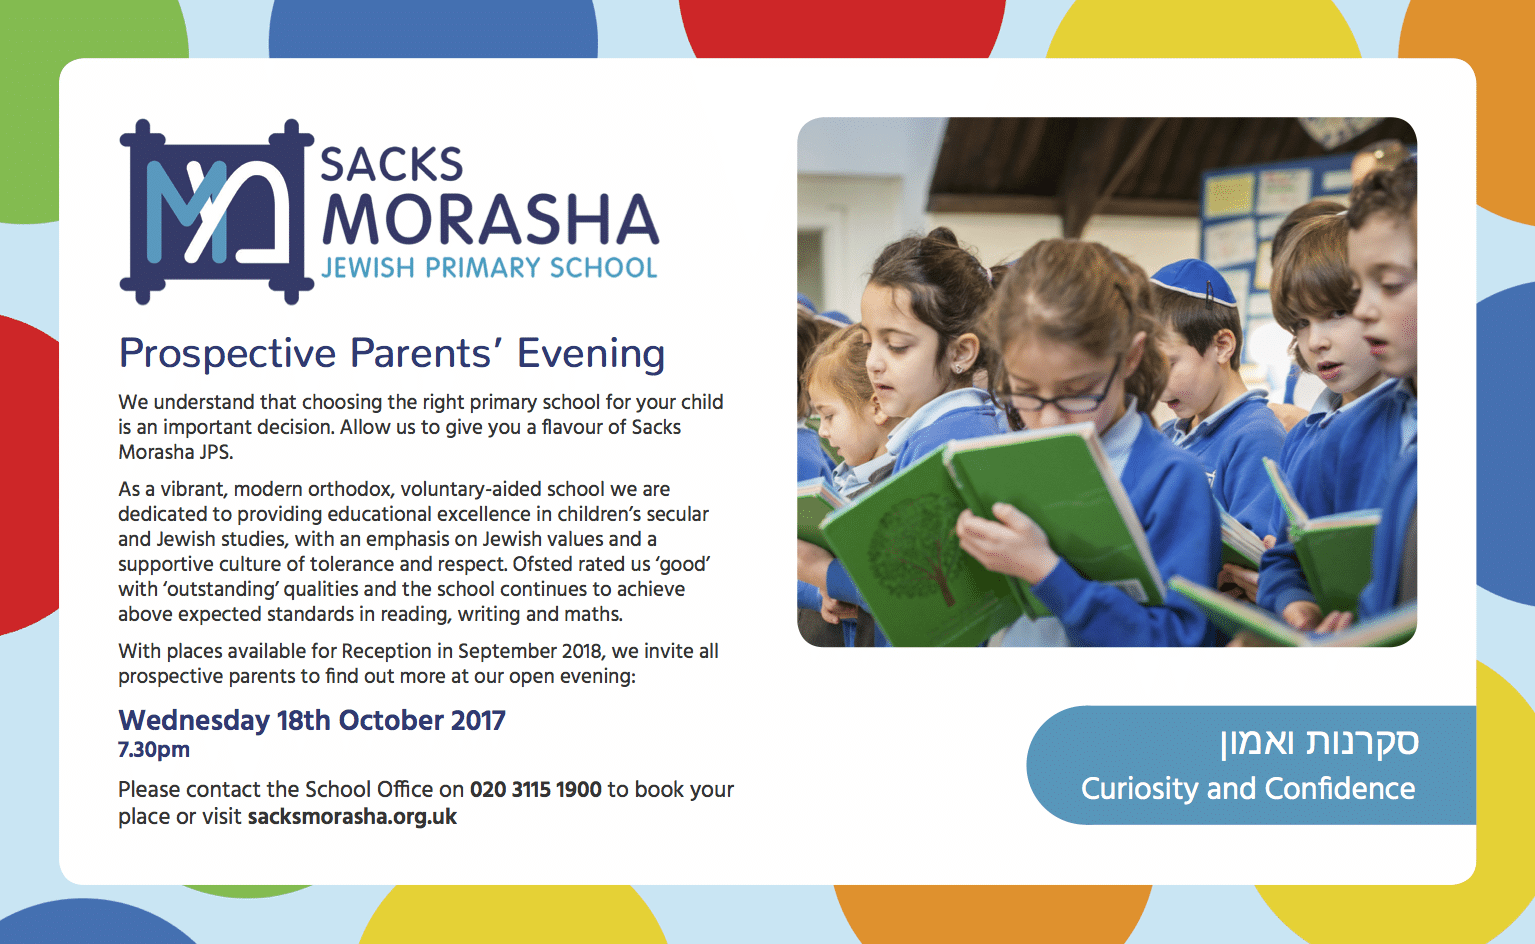 Sacks Morasha Jewish Primary School - Prospective Parents' Evening